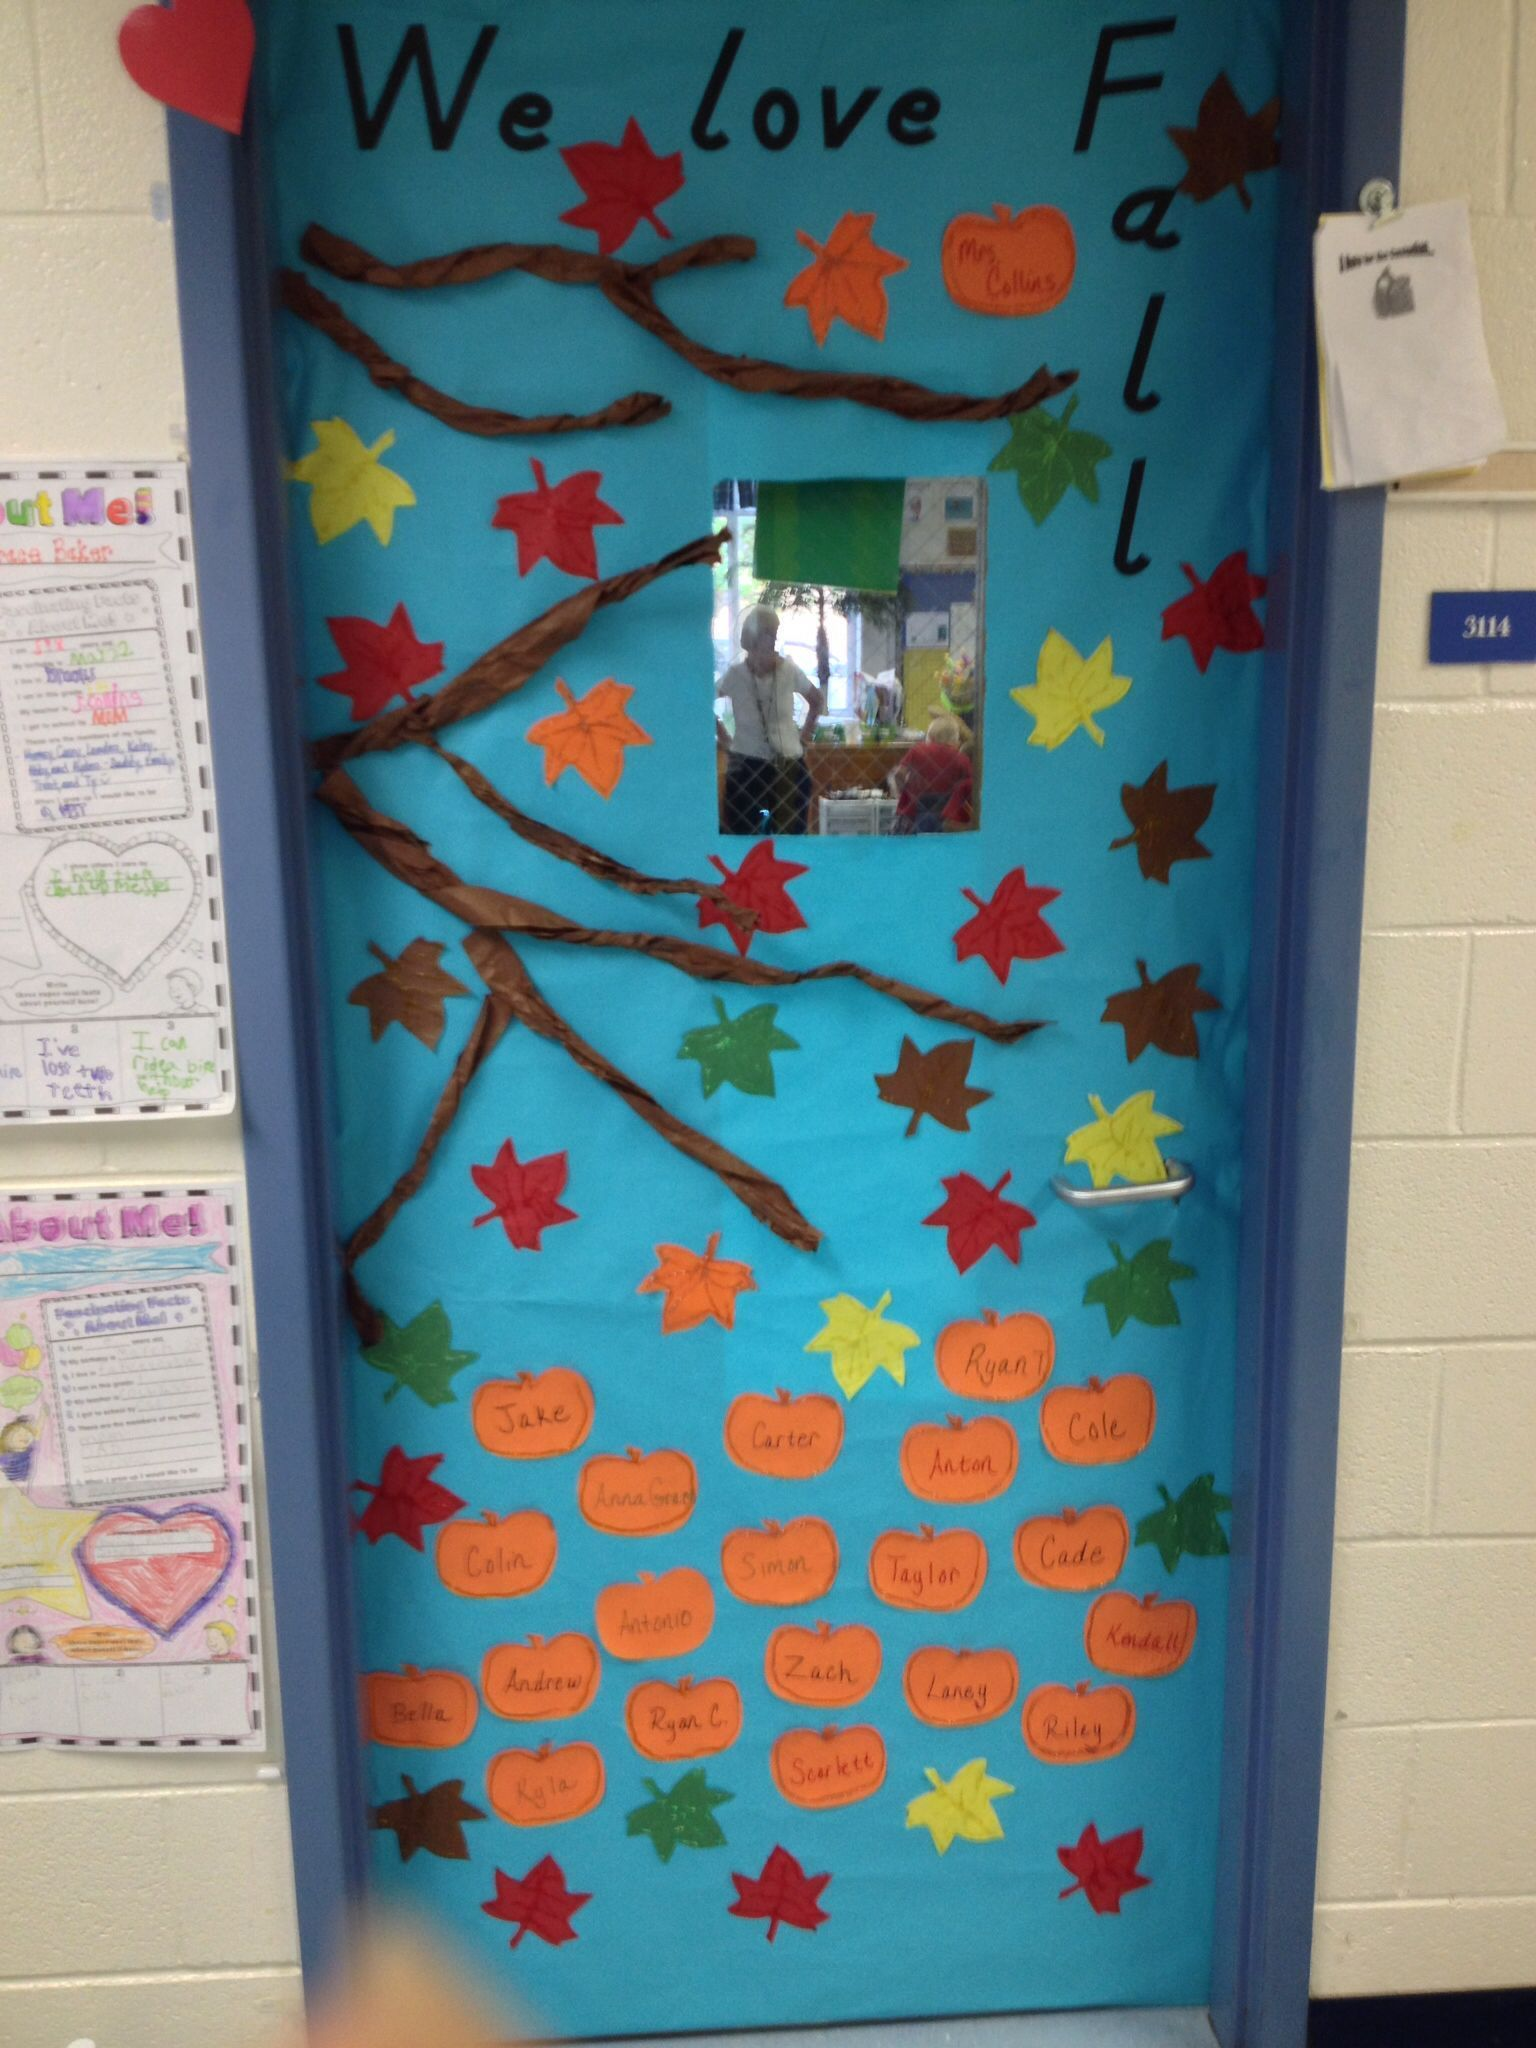 Fall classroom door decoration #falldoordecorationsclassroom Fall classroom door decoration #falldoordecorationsclassroom Fall classroom door decoration #falldoordecorationsclassroom Fall classroom door decoration #halloweenclassroomdoor